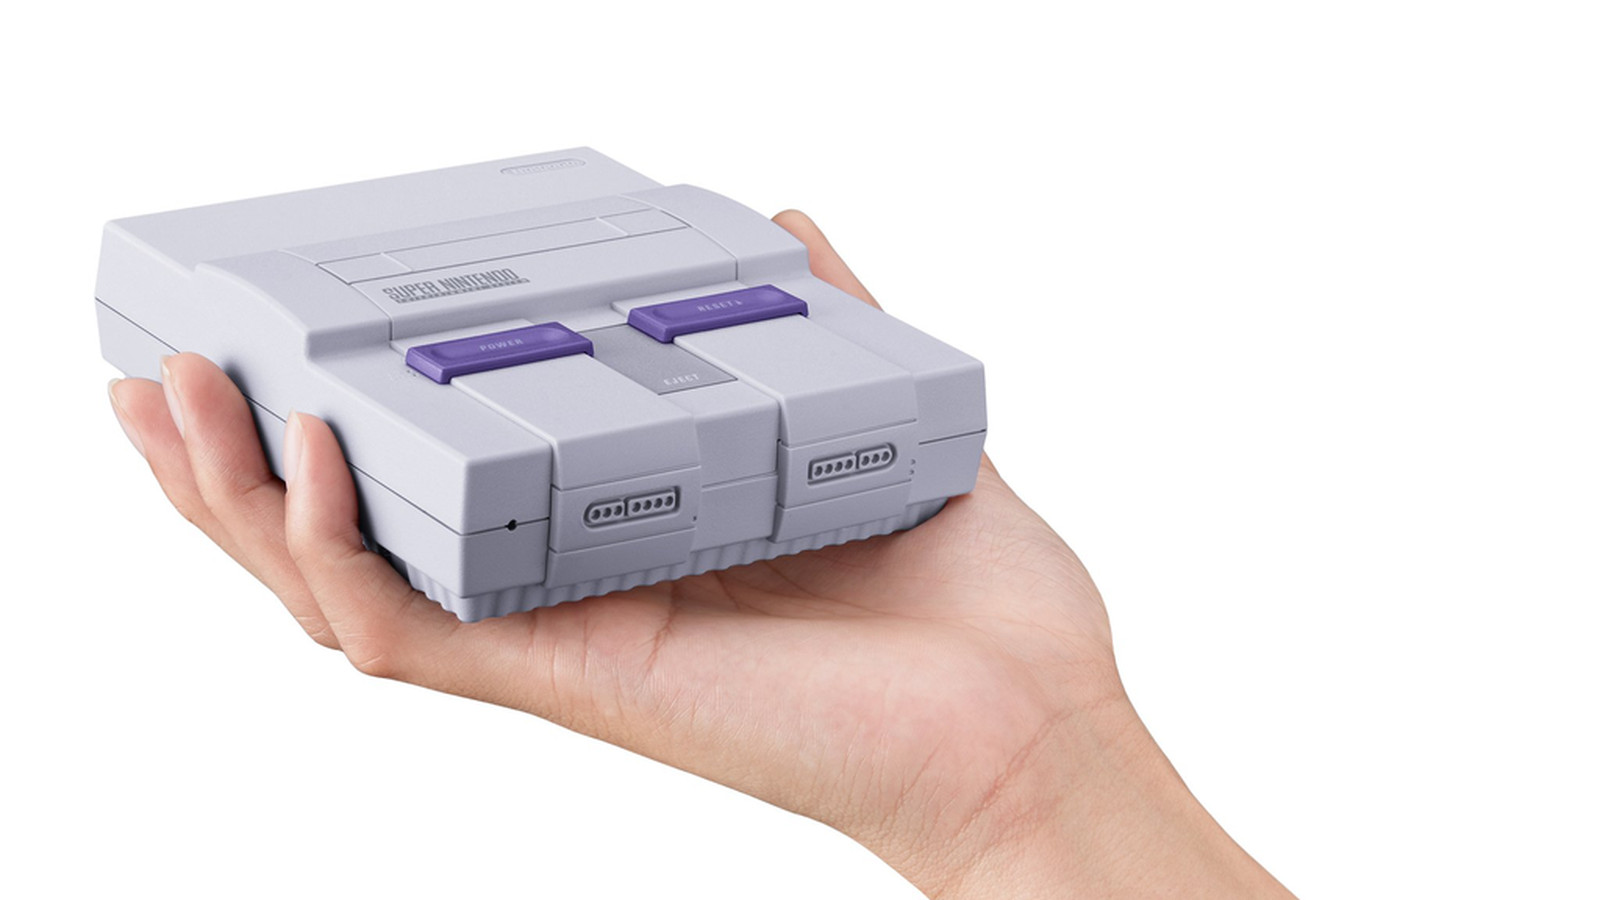 theverge.com - The mini SNES Classic launches in September for $80